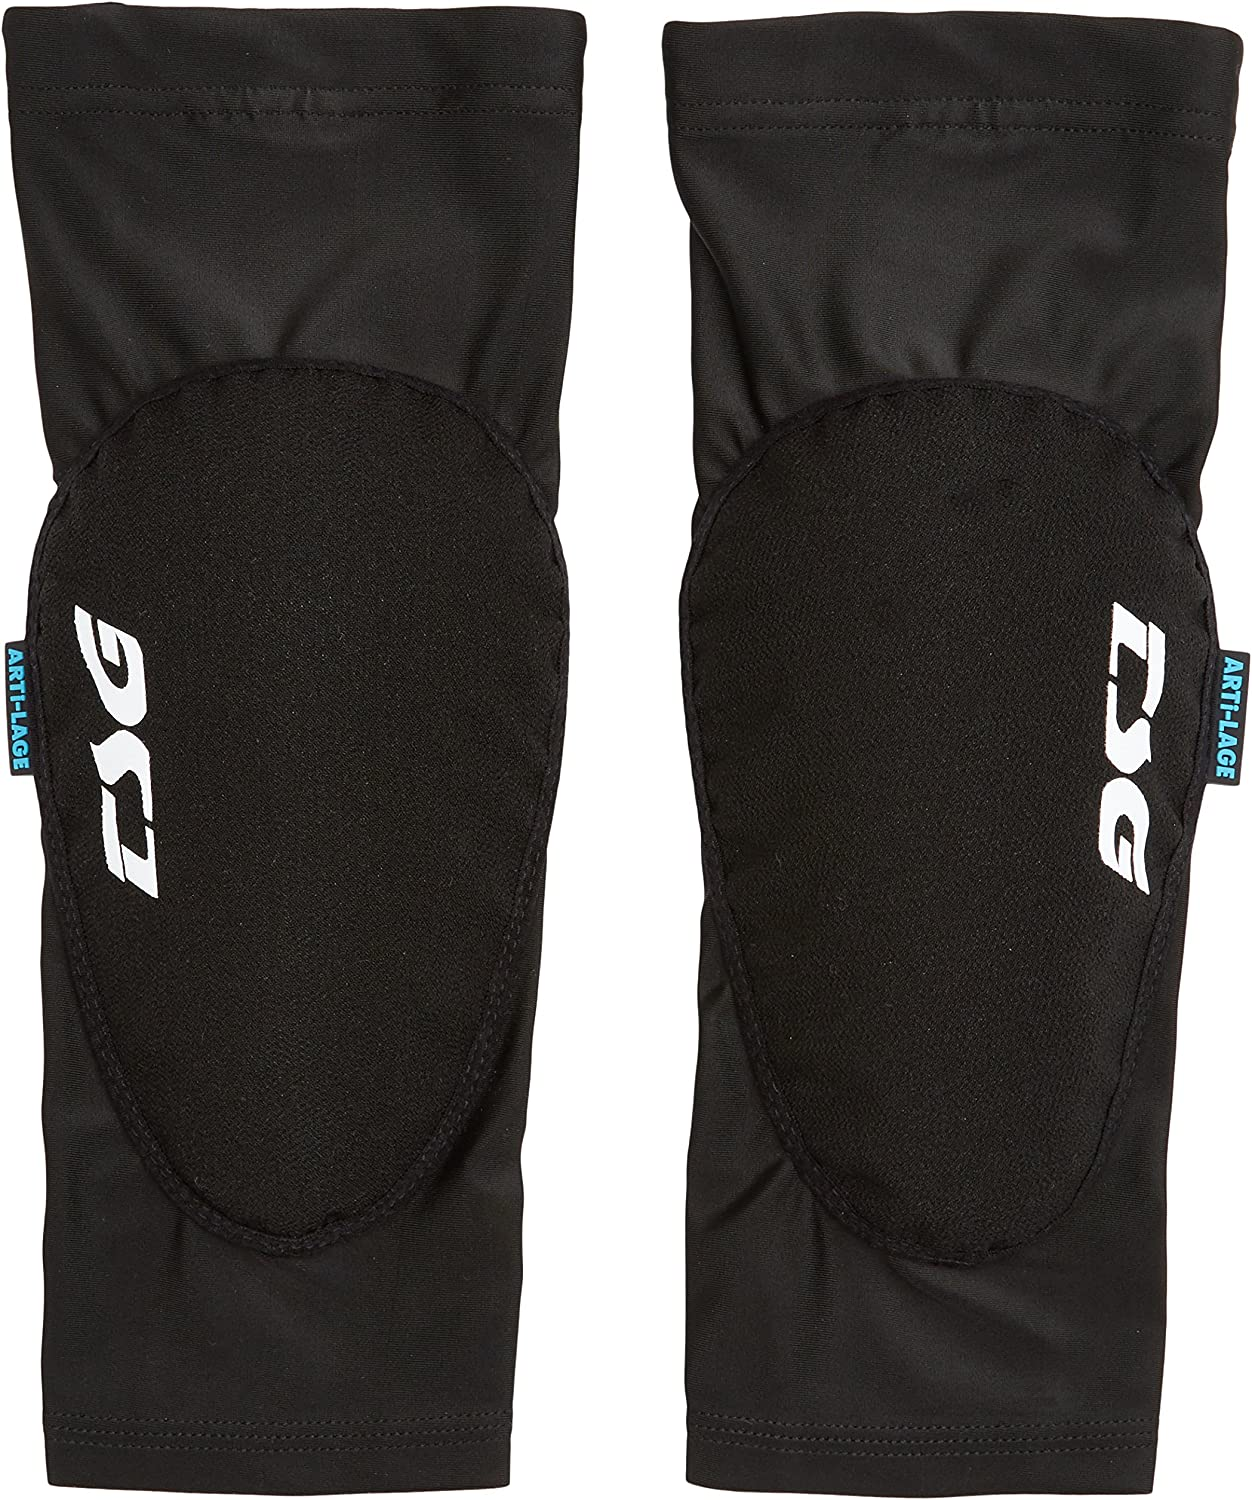 TSG Elbow-Sleeve 2nd Skin A 2.0 Pads for Bicycle